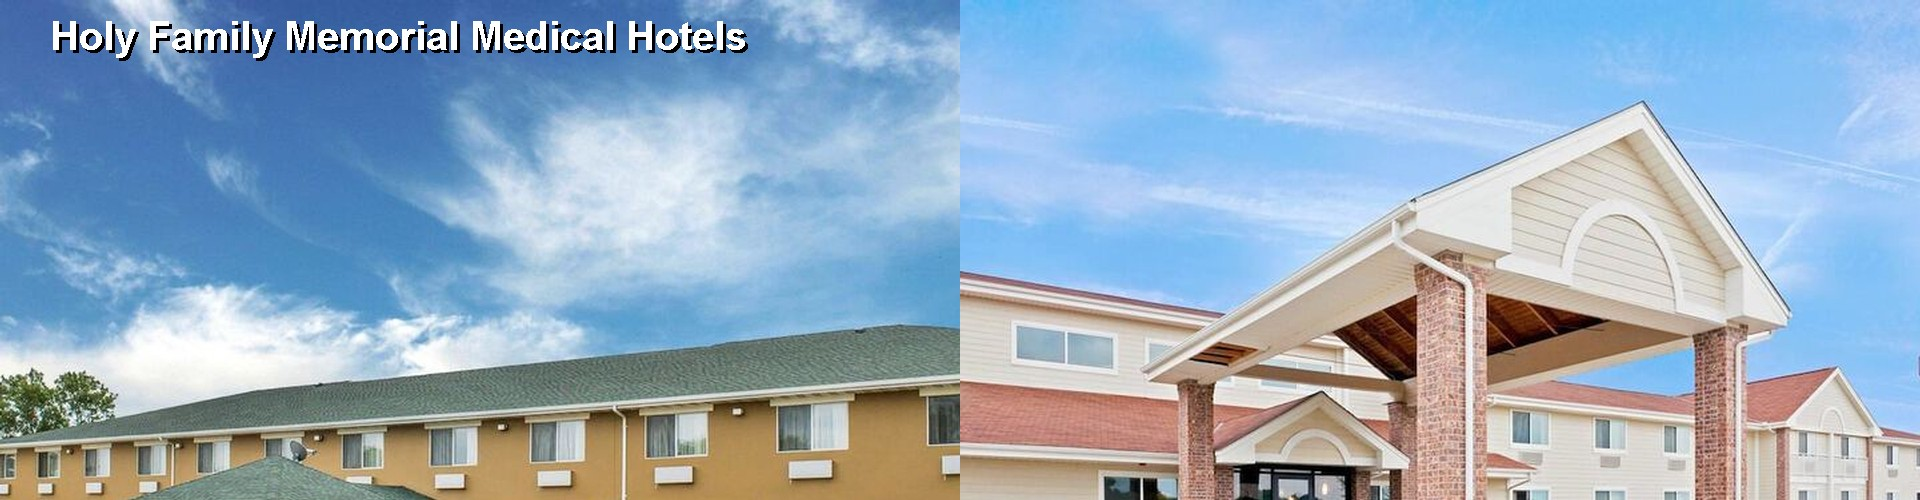 5 Best Hotels near Holy Family Memorial Medical